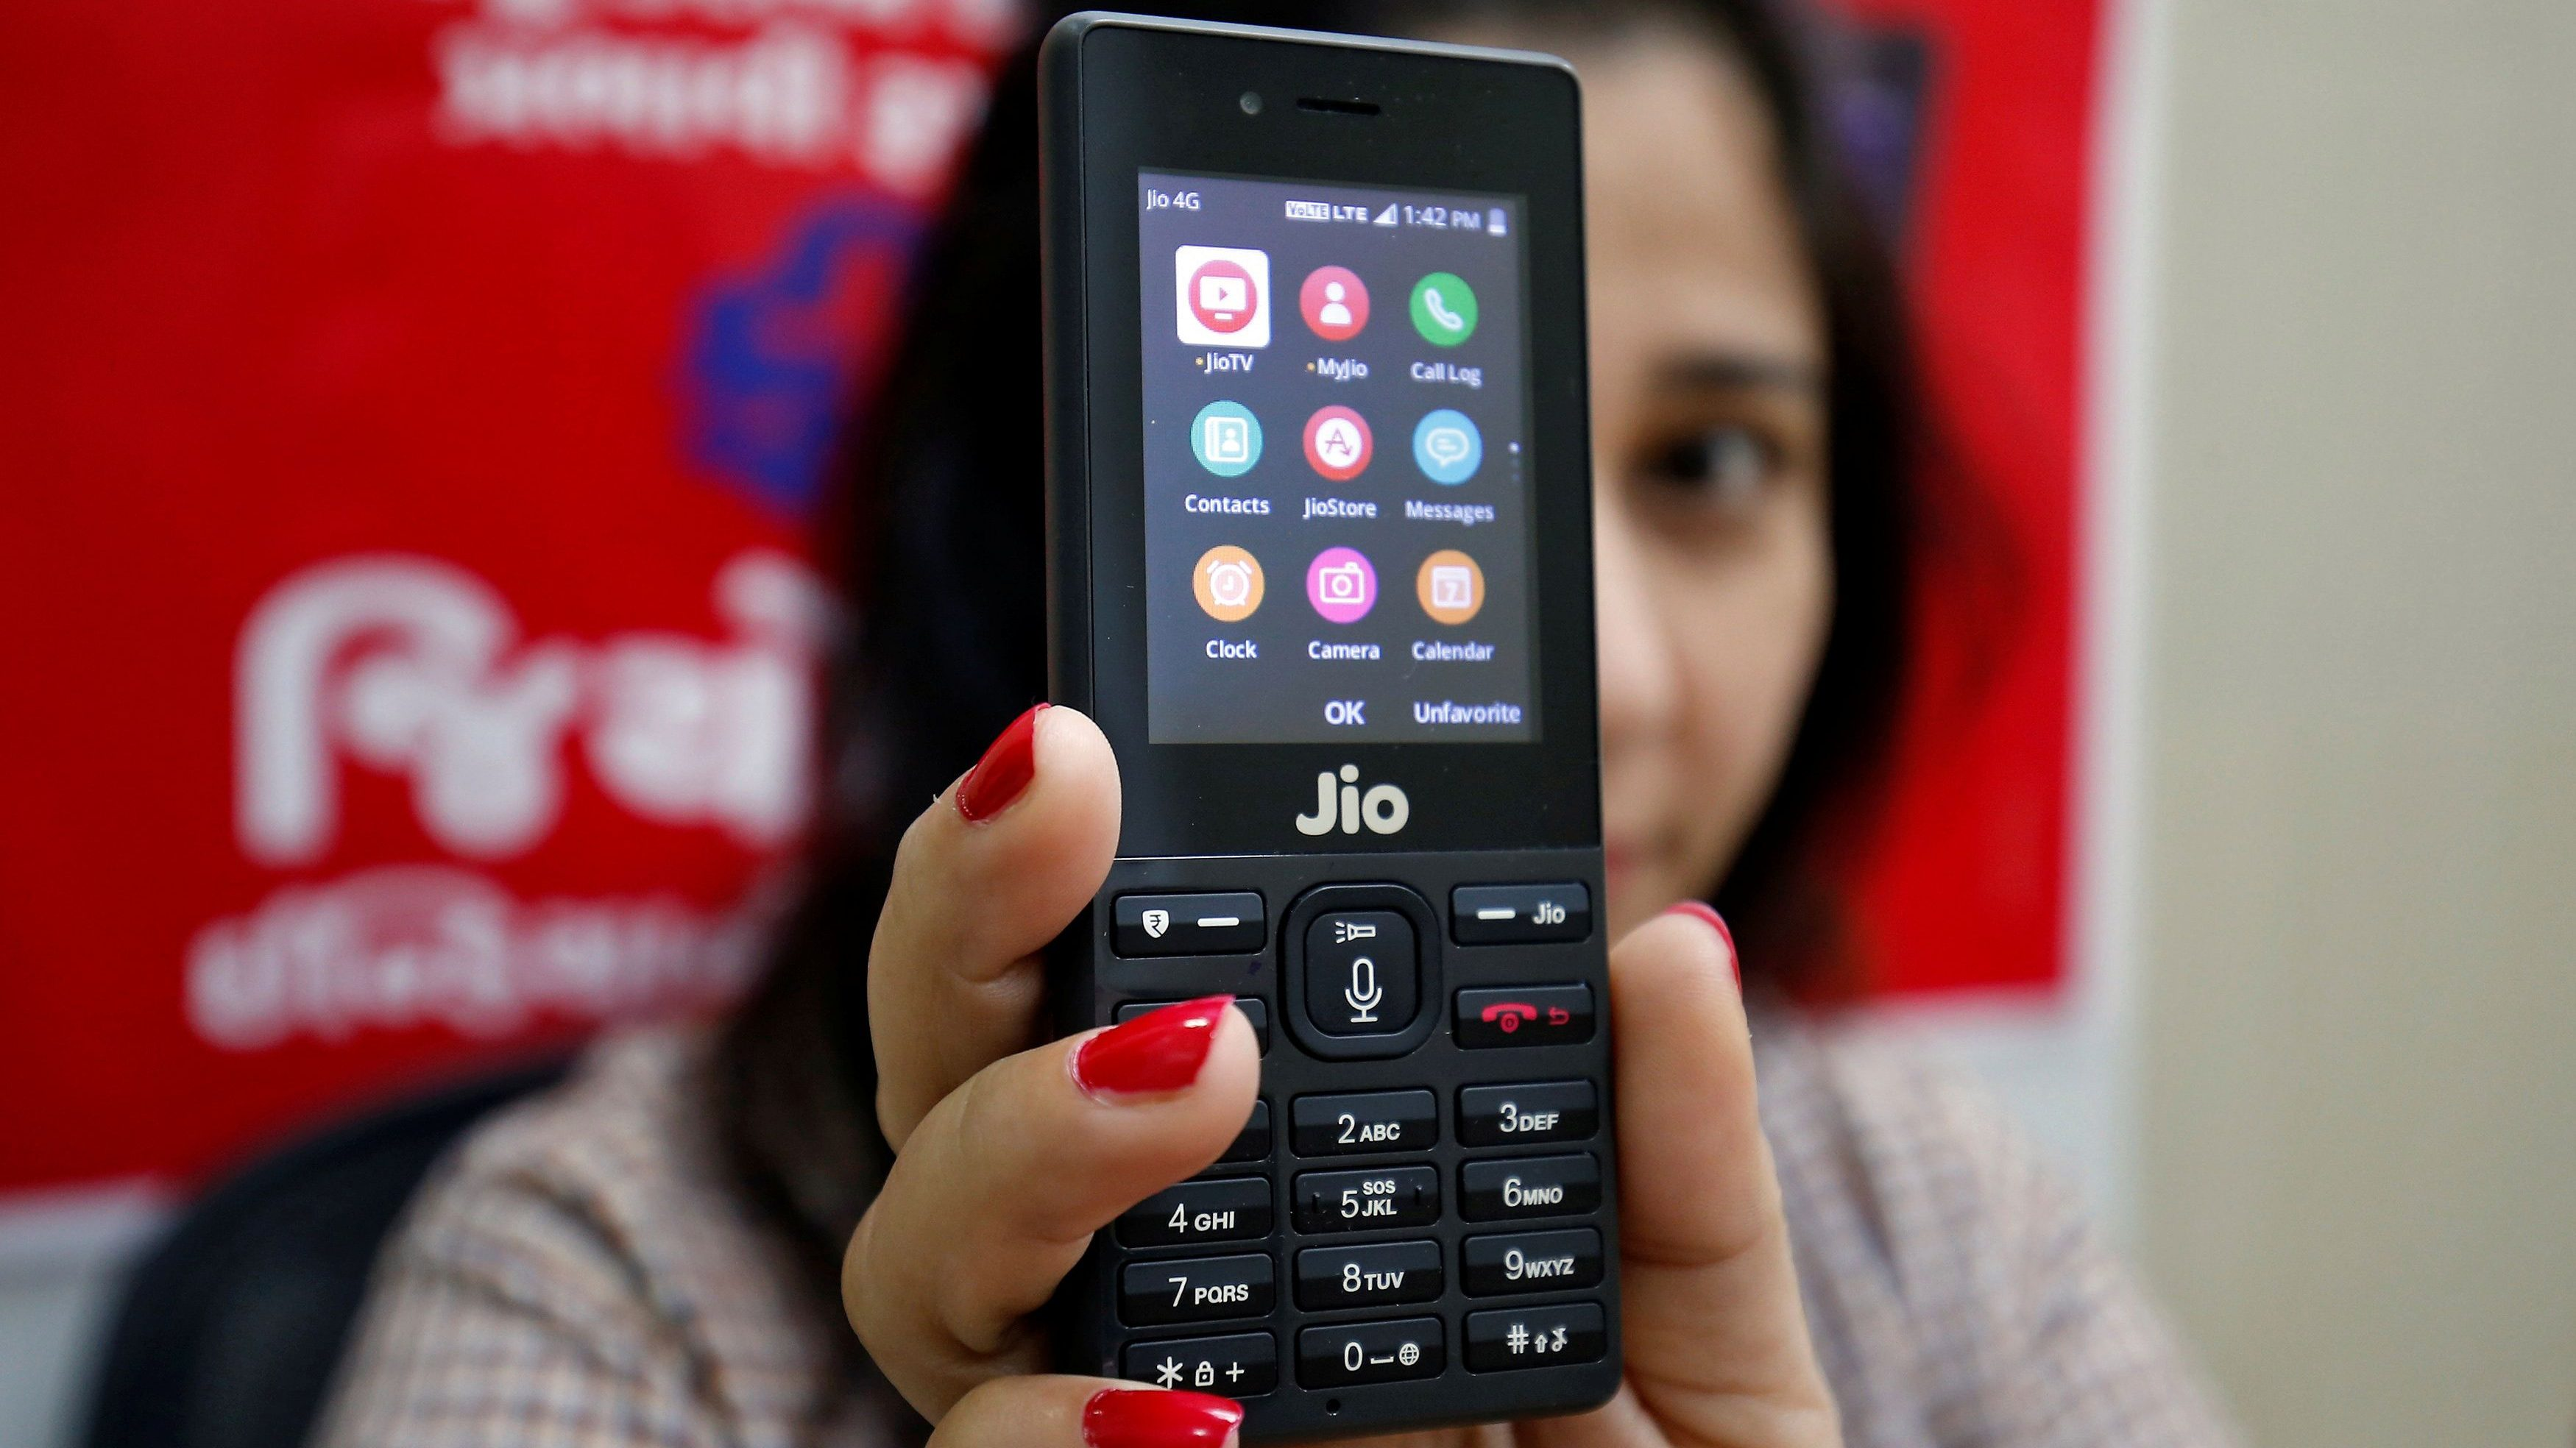 A sales person displays JioPhone as she poses for a photograph at a store of Reliance Industries' Jio telecoms unit, on the outskirts of Ahmedabad, India, September 26, 2017. REUTERS/Amit Dave - RC18E8A15240